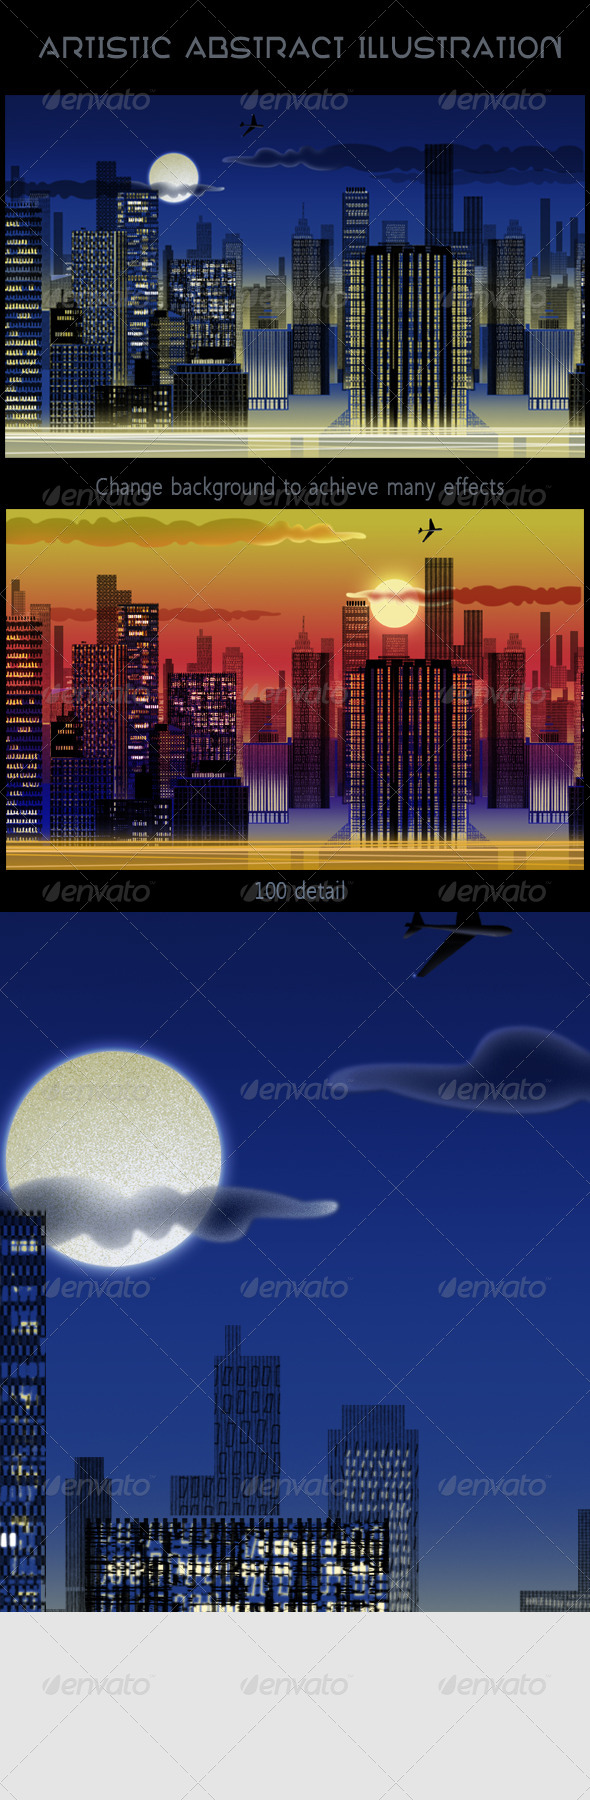 City Skyline at Night Abstract Web Illustration - Abstract Backgrounds